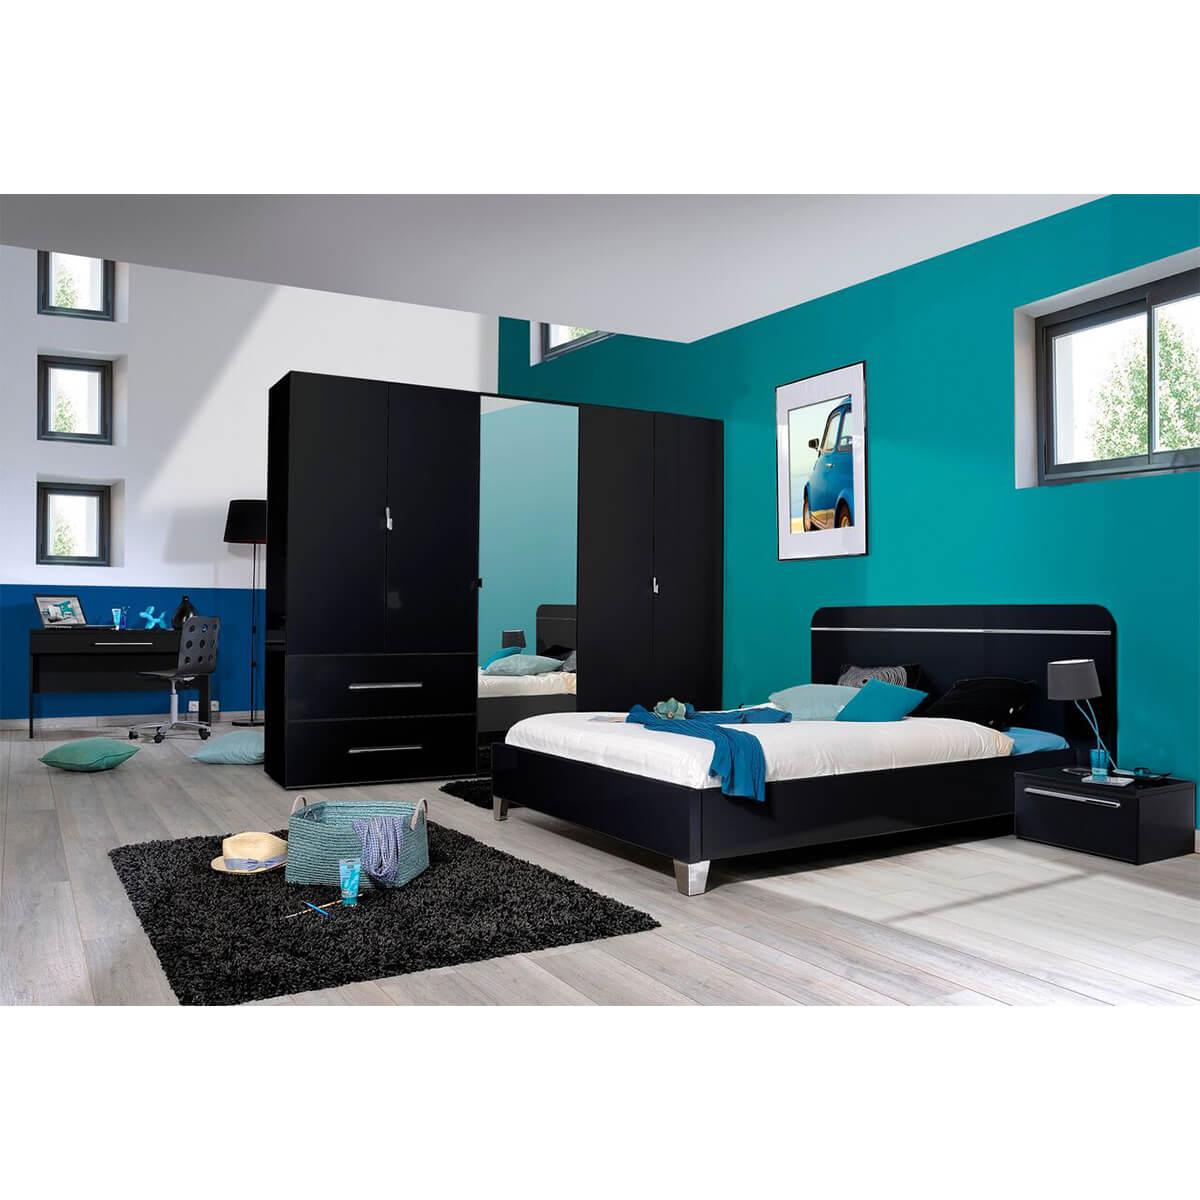 First EU Bed Frame Black High Gloss 4